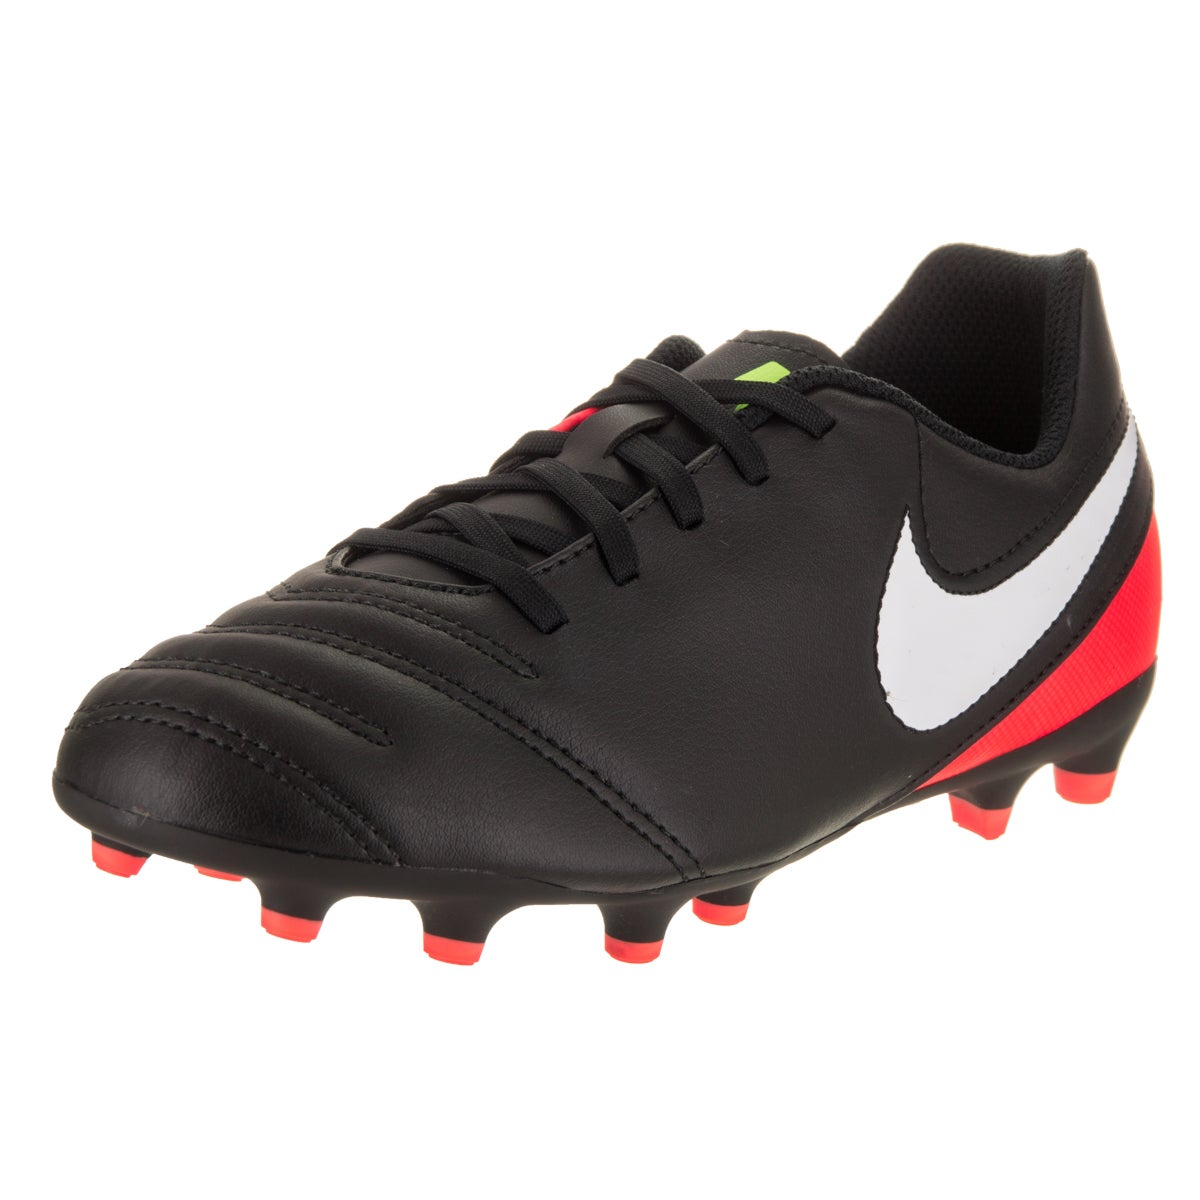 5b48a18f4 Shop Nike Kids JR Tiempo Rio III FG Soccer Cleat - Free Shipping On Orders  Over  45 - Overstock - 14428732